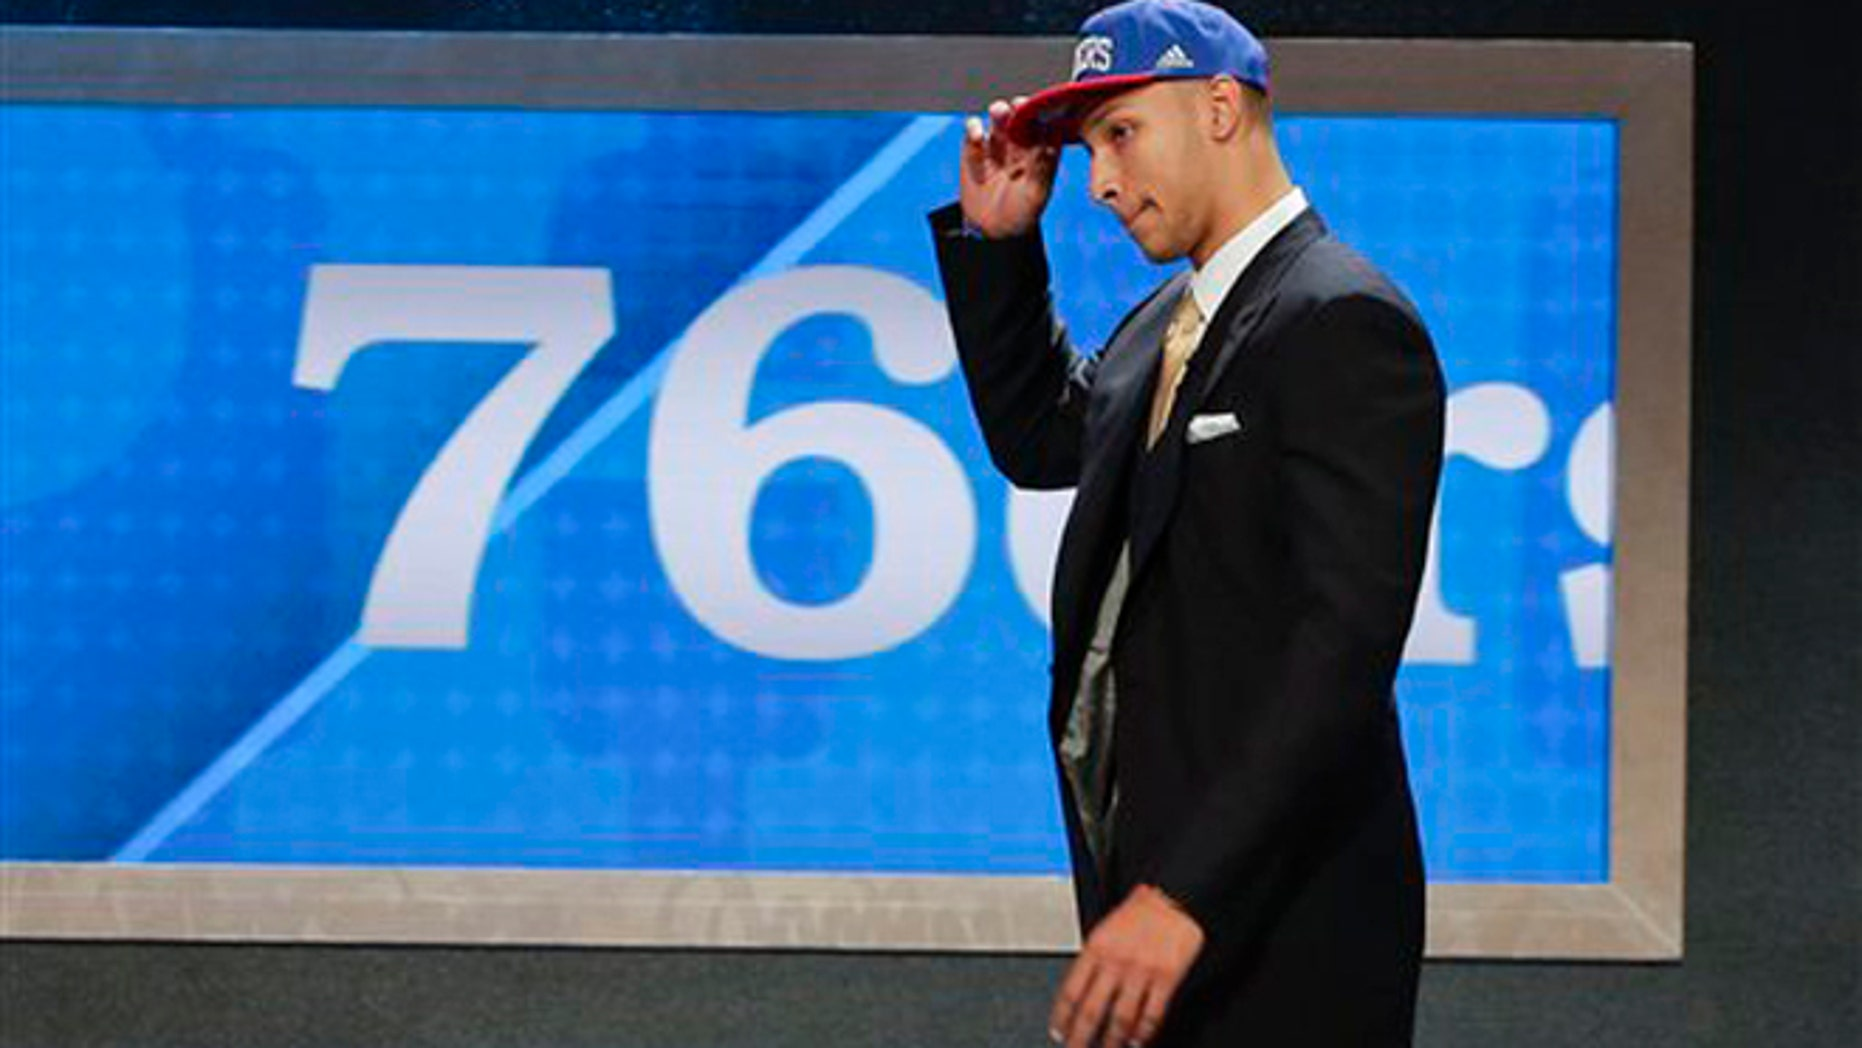 LSU's Ben Simmons walks up on stage after being selected as the top pick by the Philadelphia 76ers during the NBA basketball draft, Thursday, June 23, 2016, in New York. (AP Photo/Frank Franklin II)